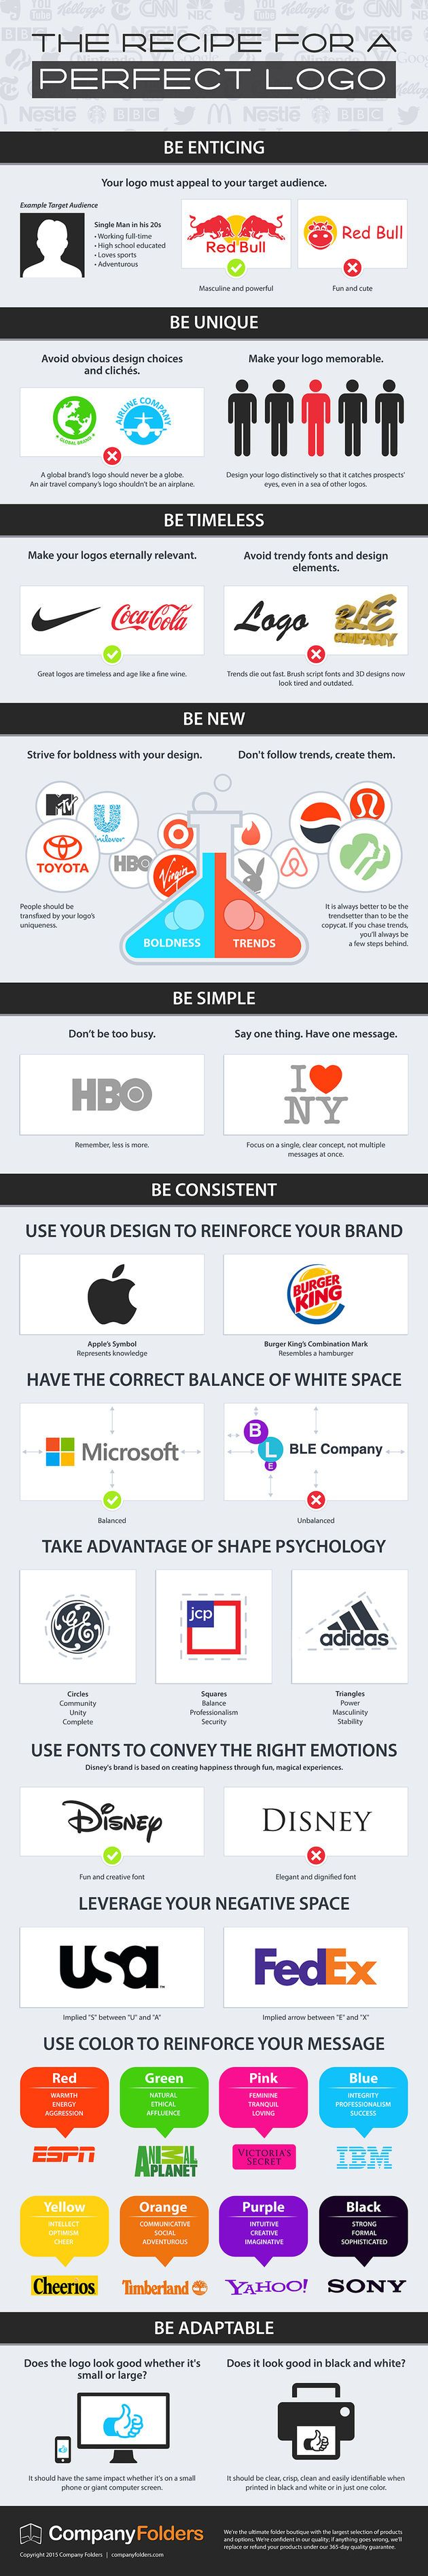 infographic: The recipe for the perfect logo. The article is from a Dutch marketing website, but the infographic is in English